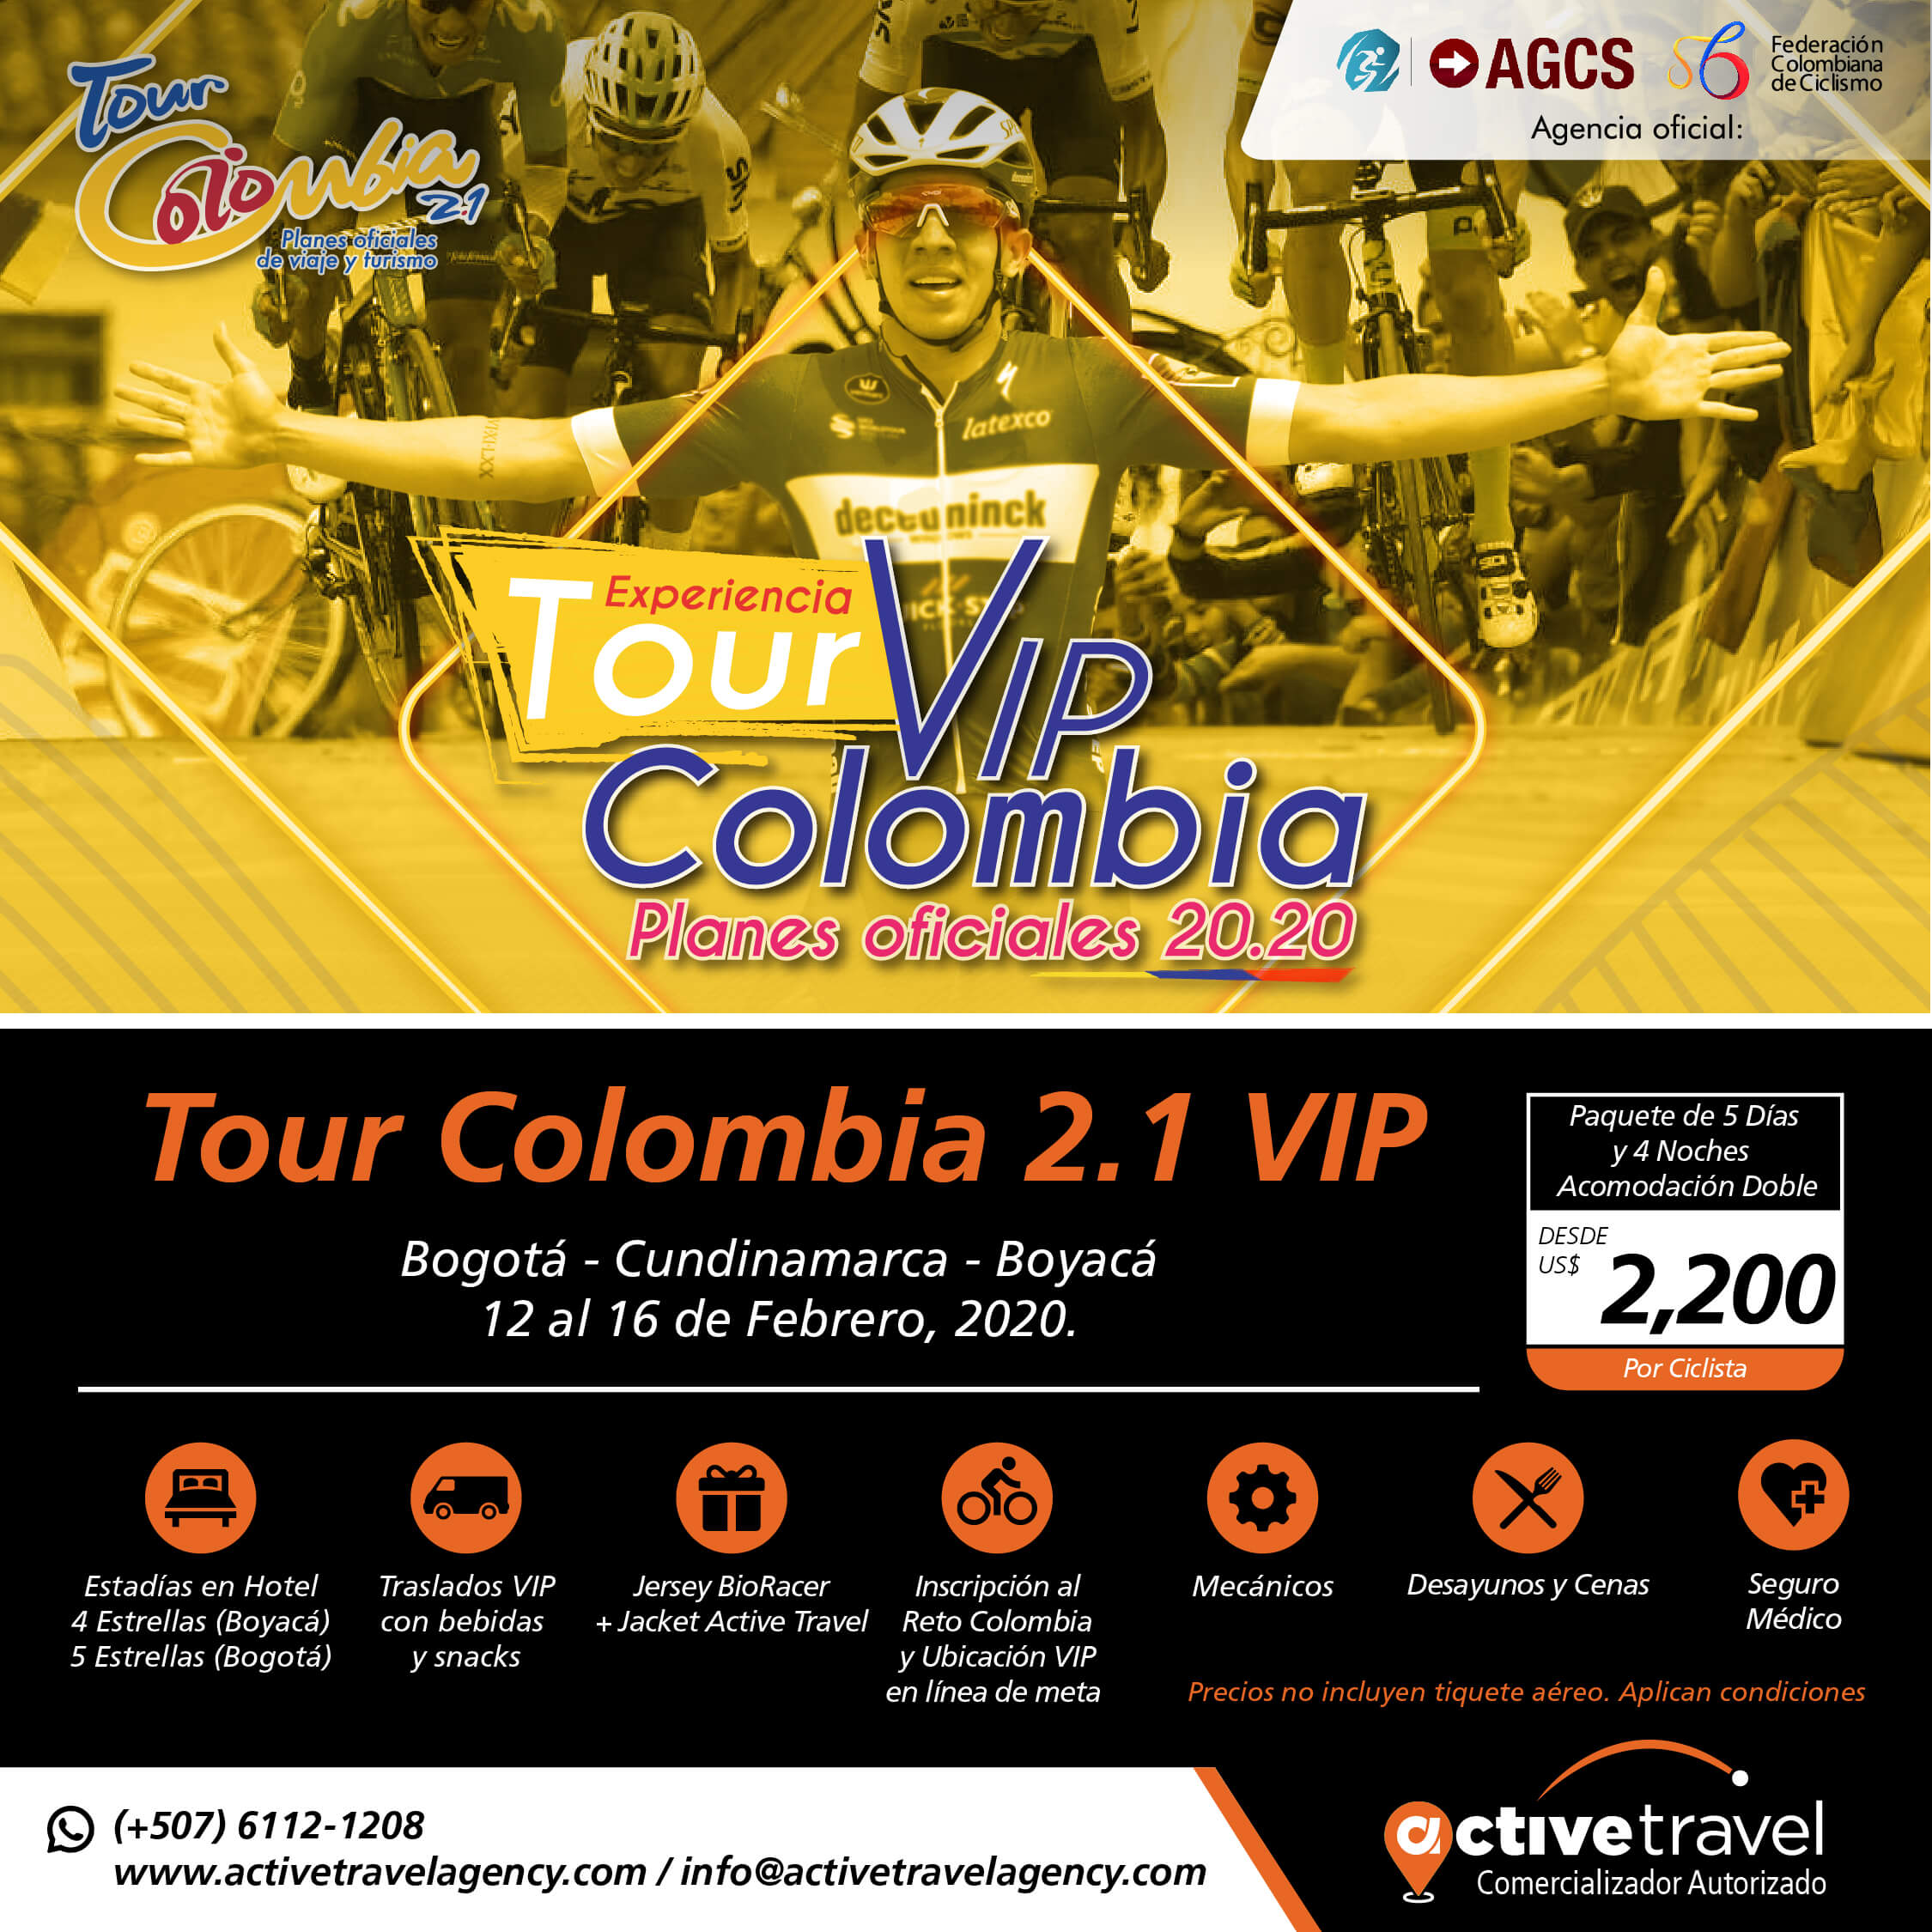 Tour Colombia 2.1 VIP - Active Travel Agency